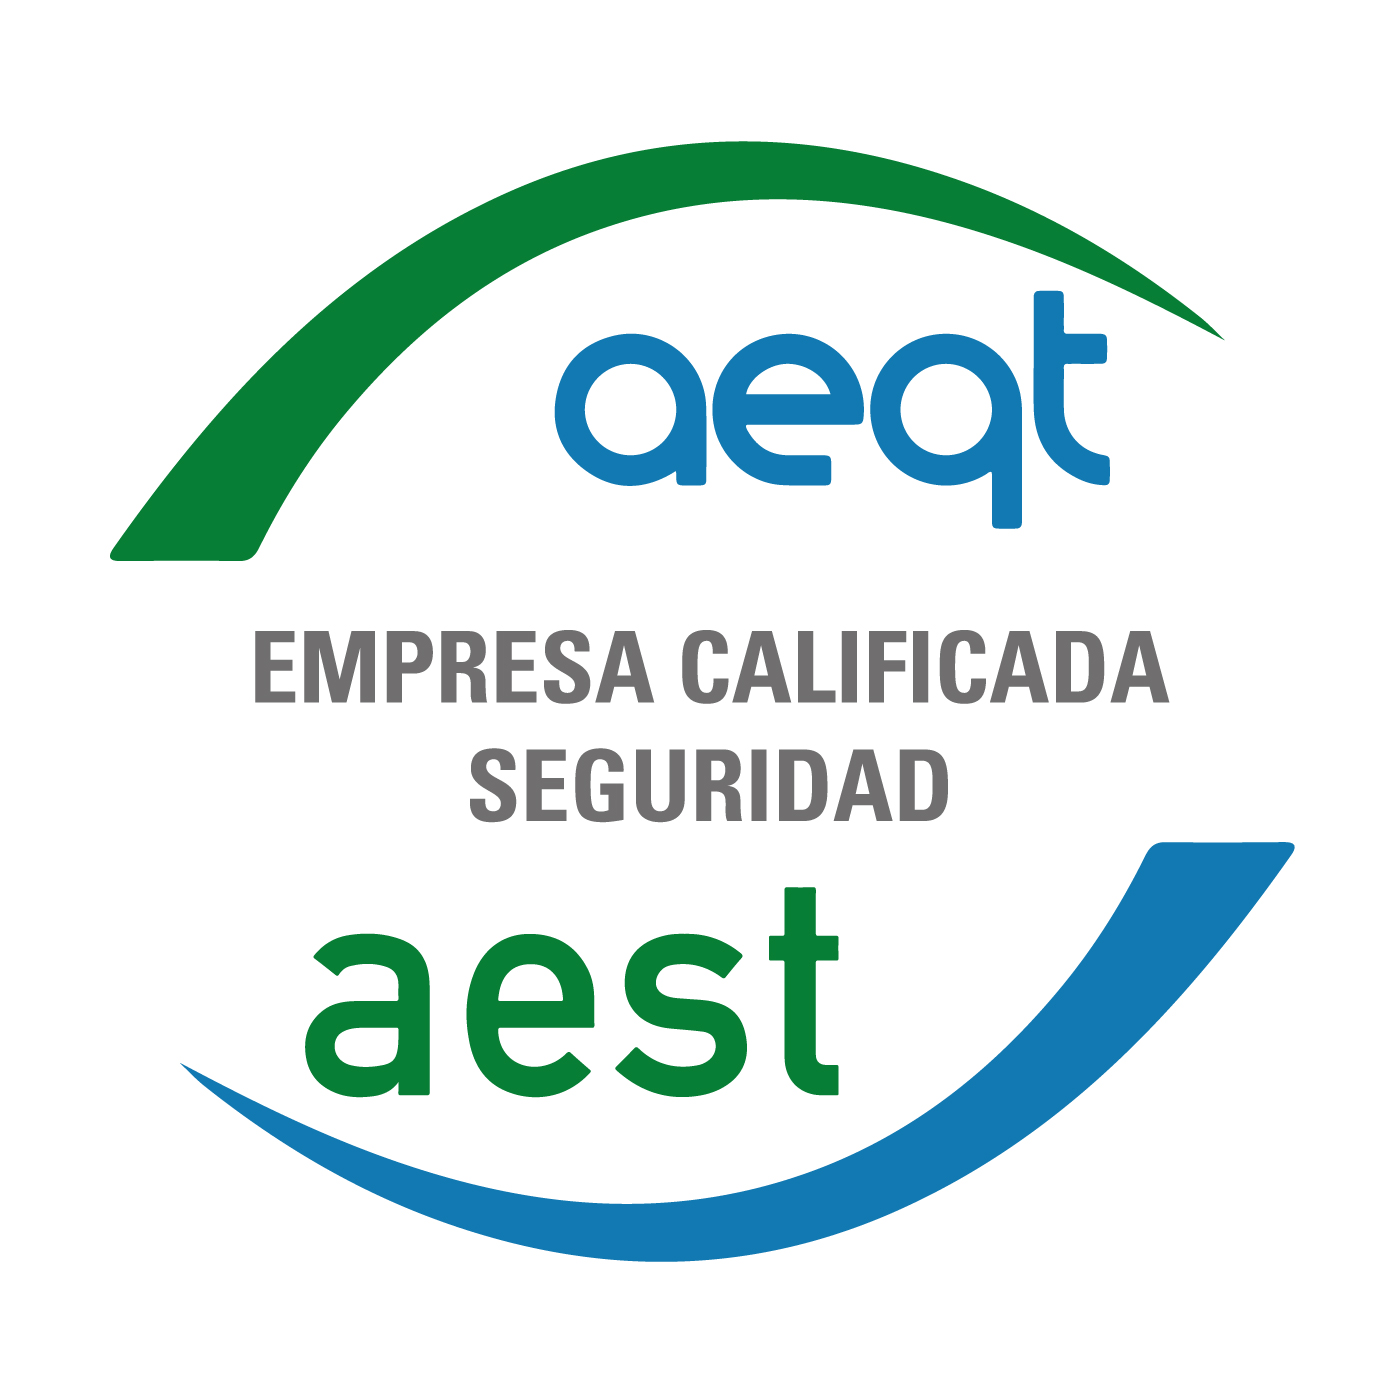 LOGOTIPO SEGURIDAD AEQT AEST 2018 Rev.1